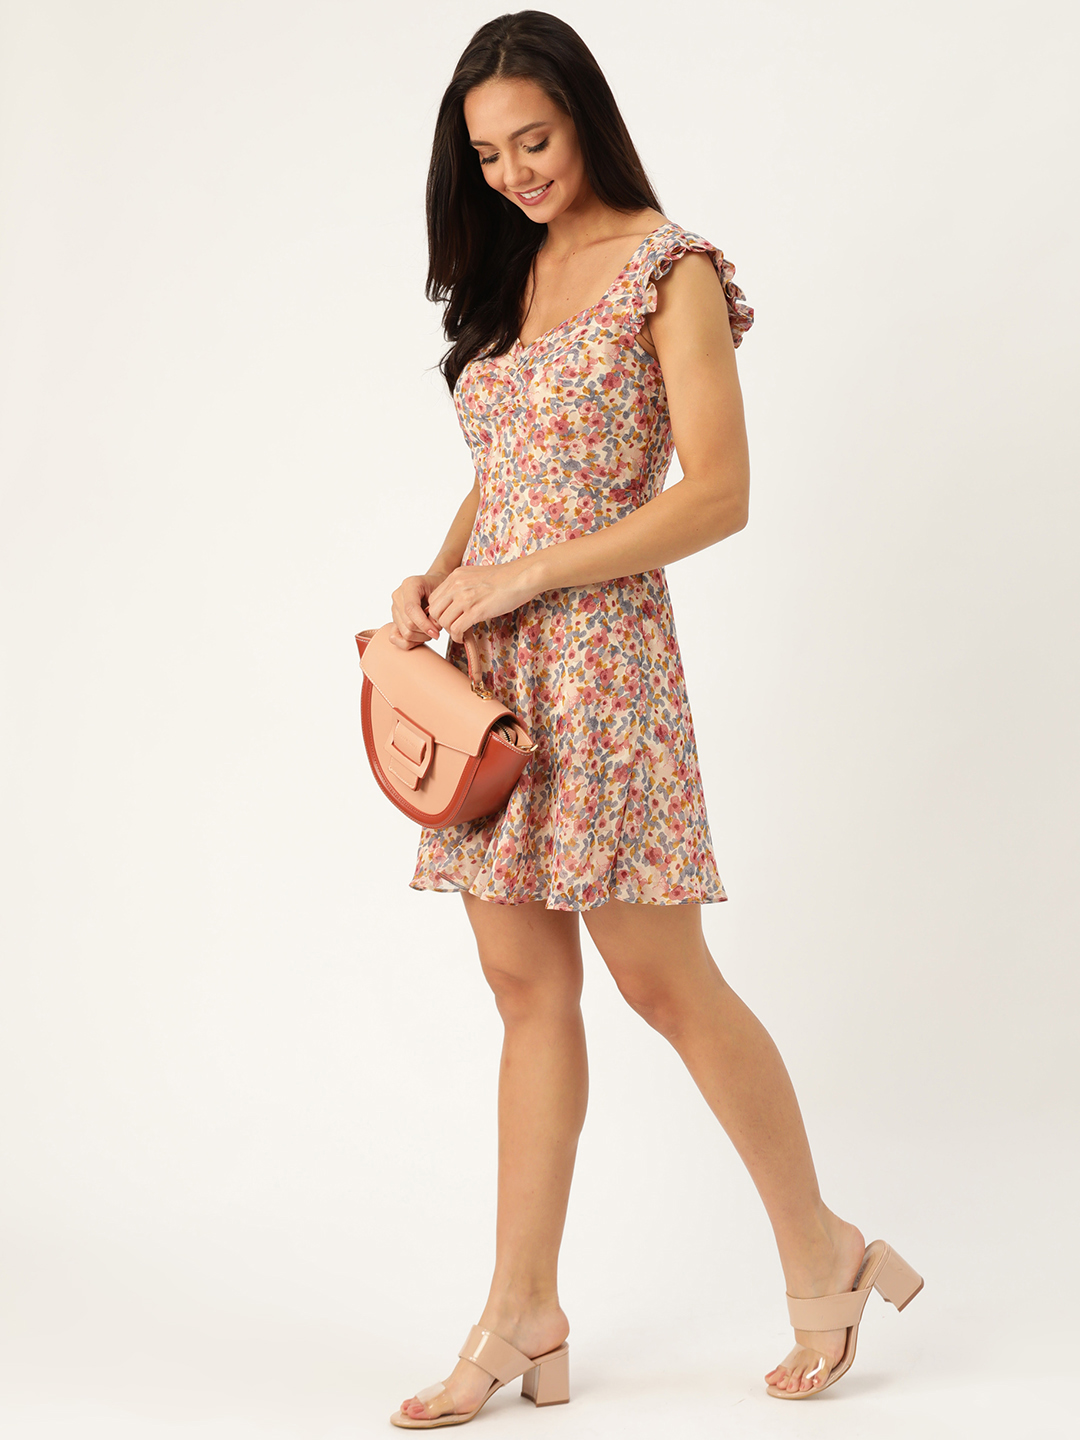 Dresses-Dressed To Frill Floral Dress2